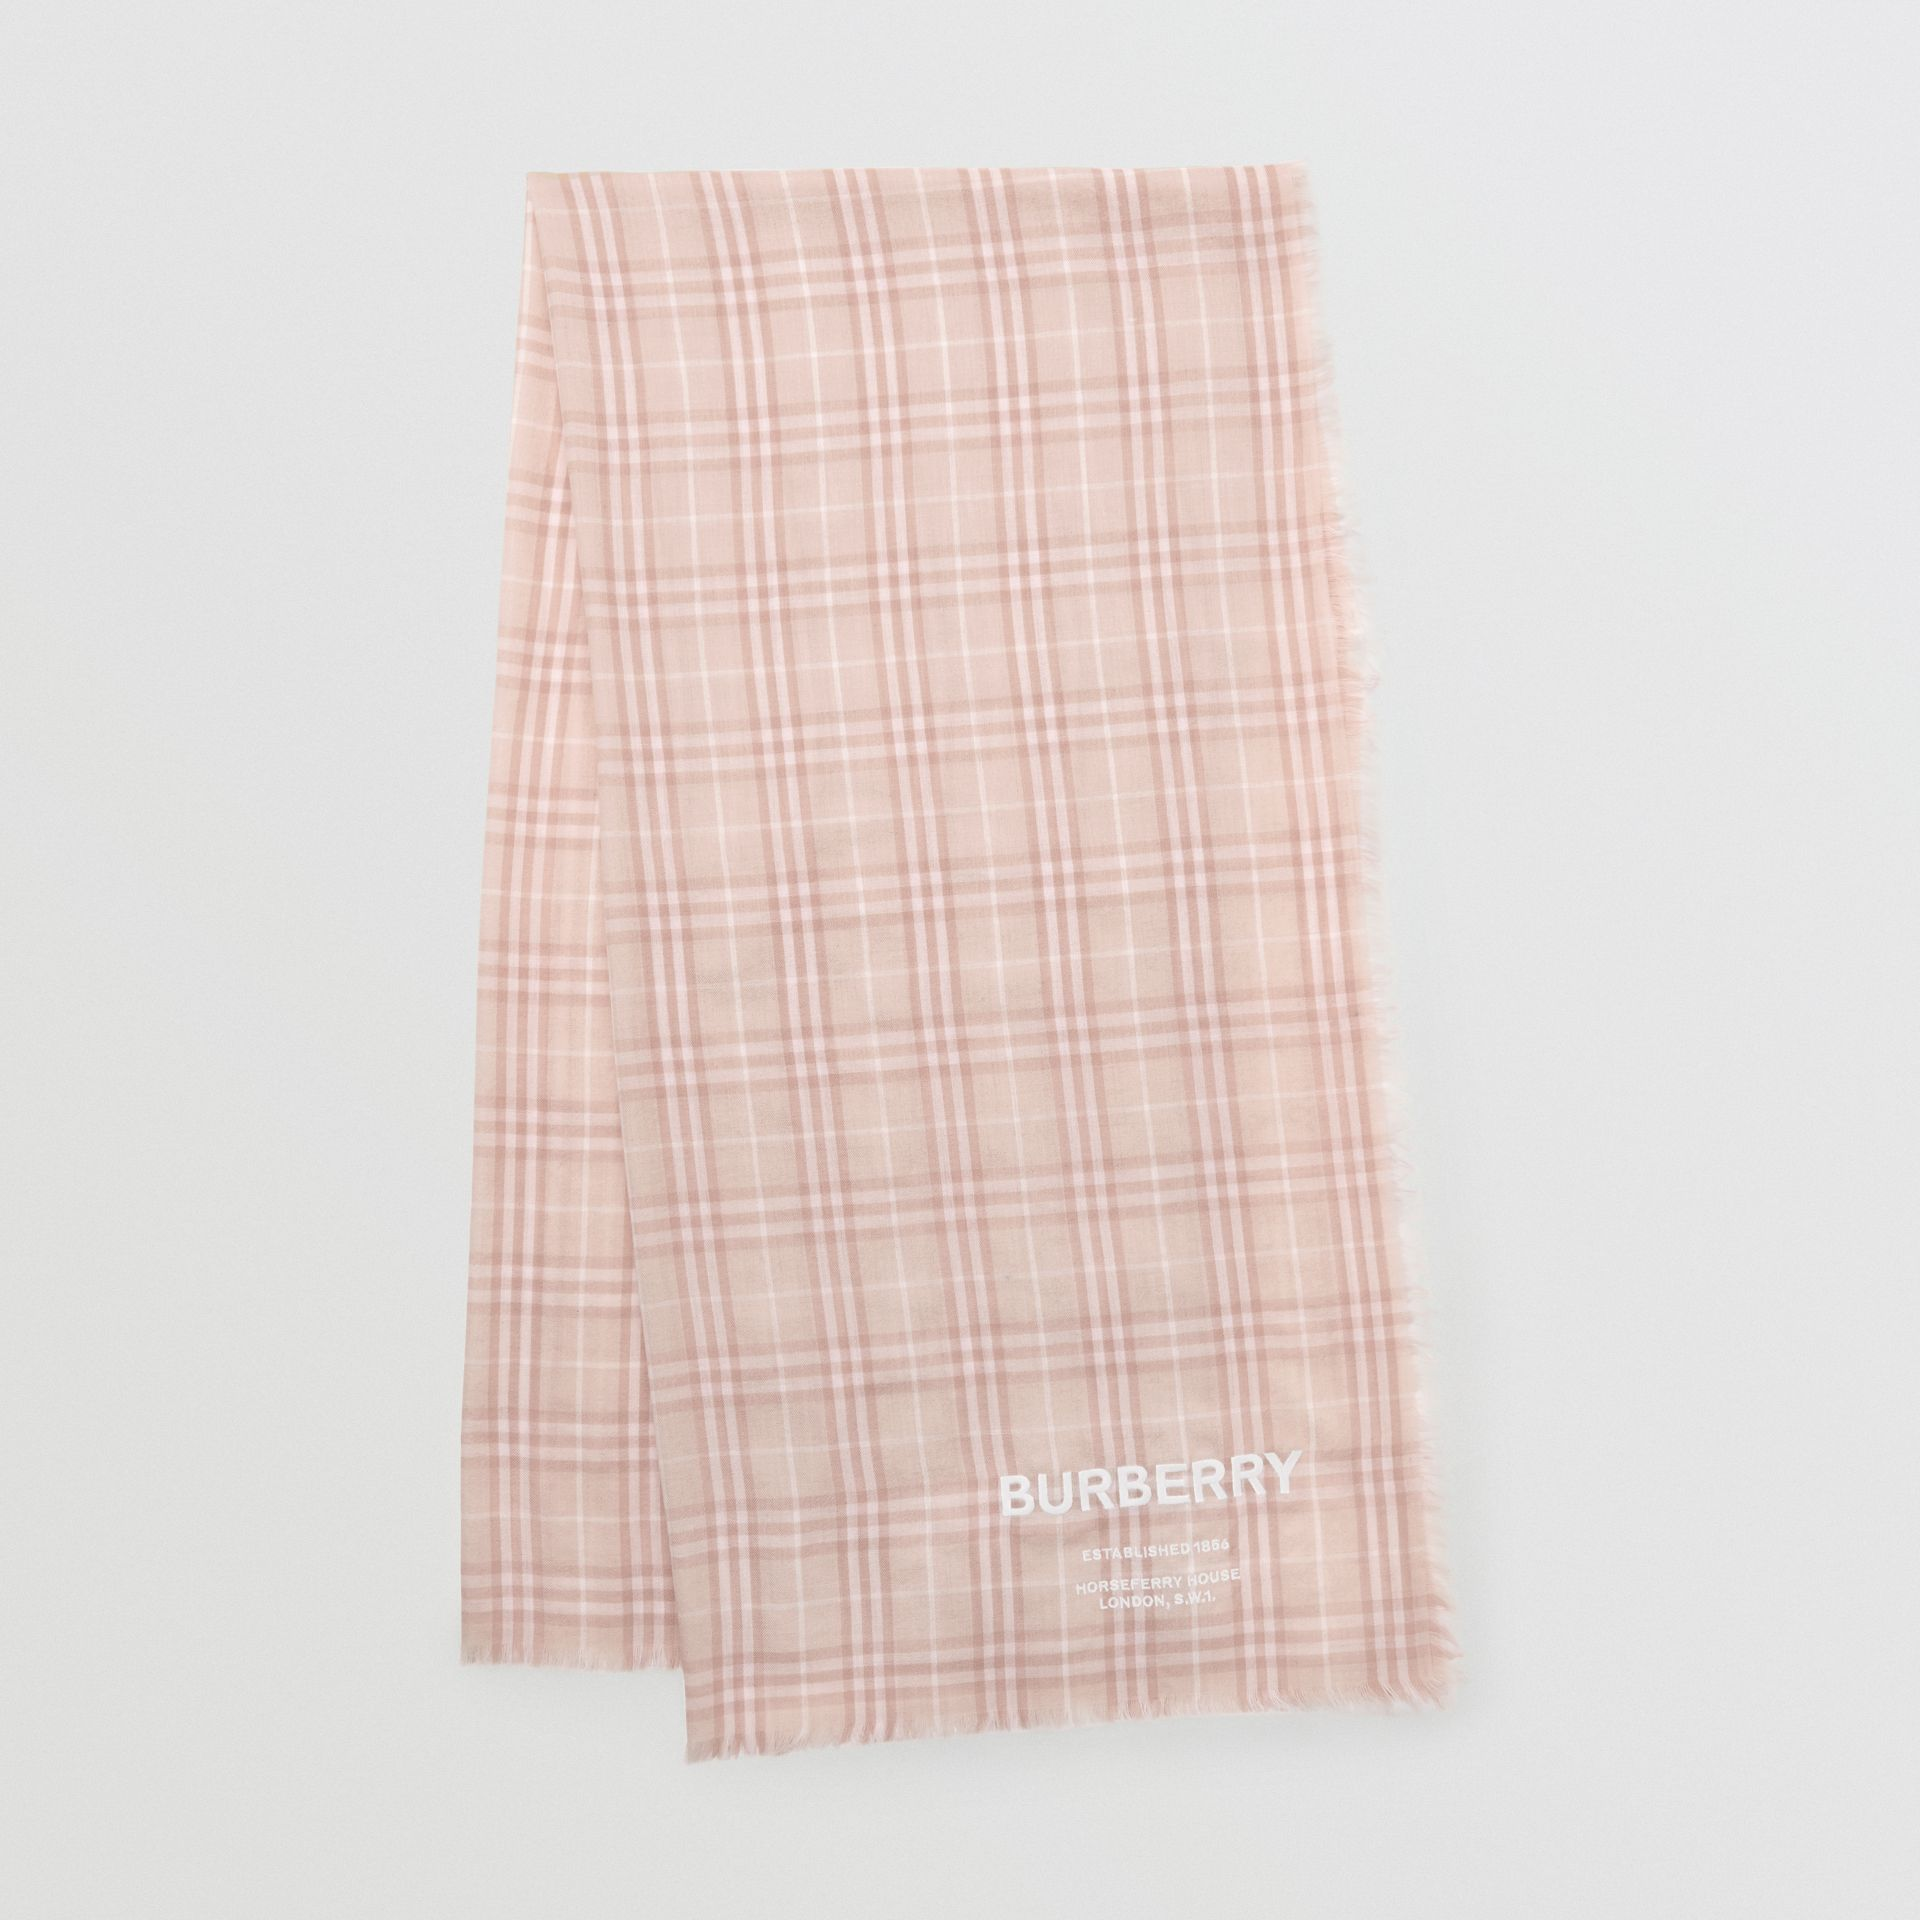 Embroidered Vintage Check Lightweight Cashmere Scarf in Soft Peach | Burberry United States - gallery image 0